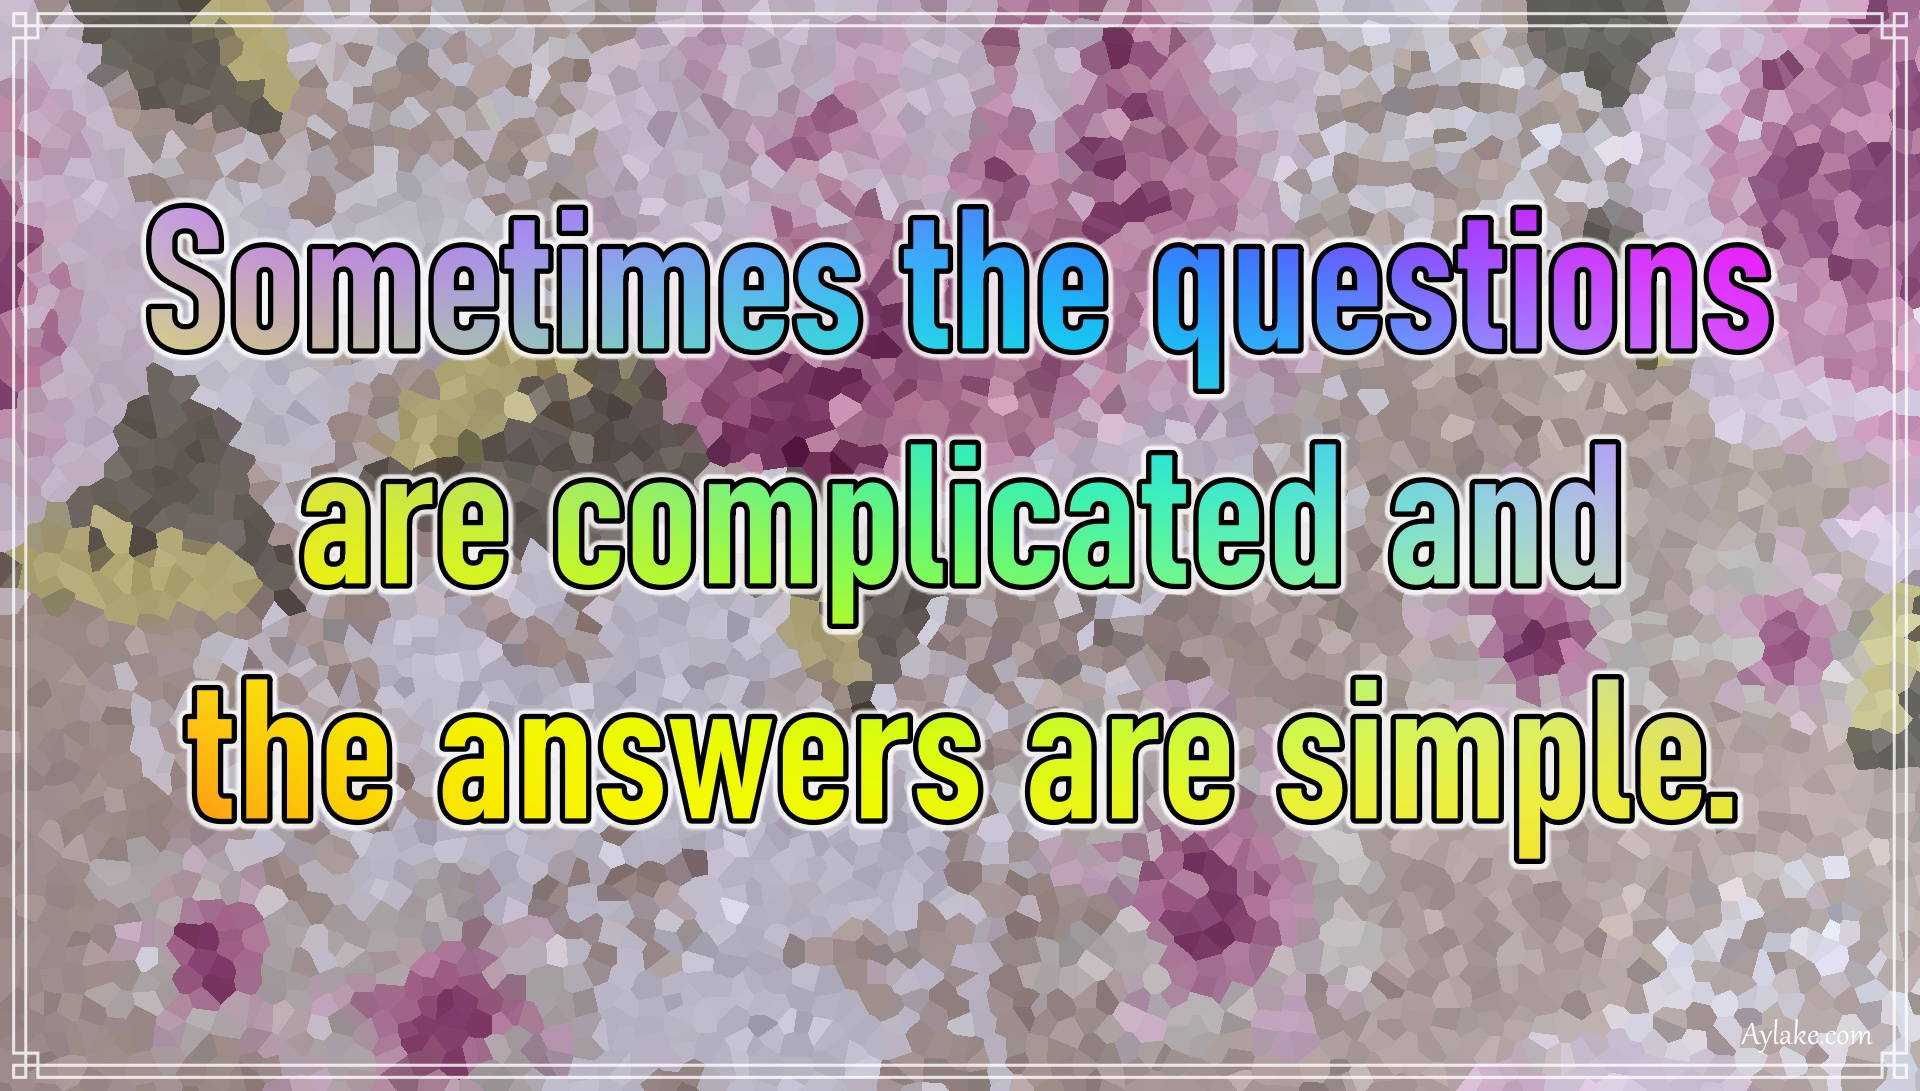 Life quotes Sometimes the questions are complicated and the answers are simple Aylake